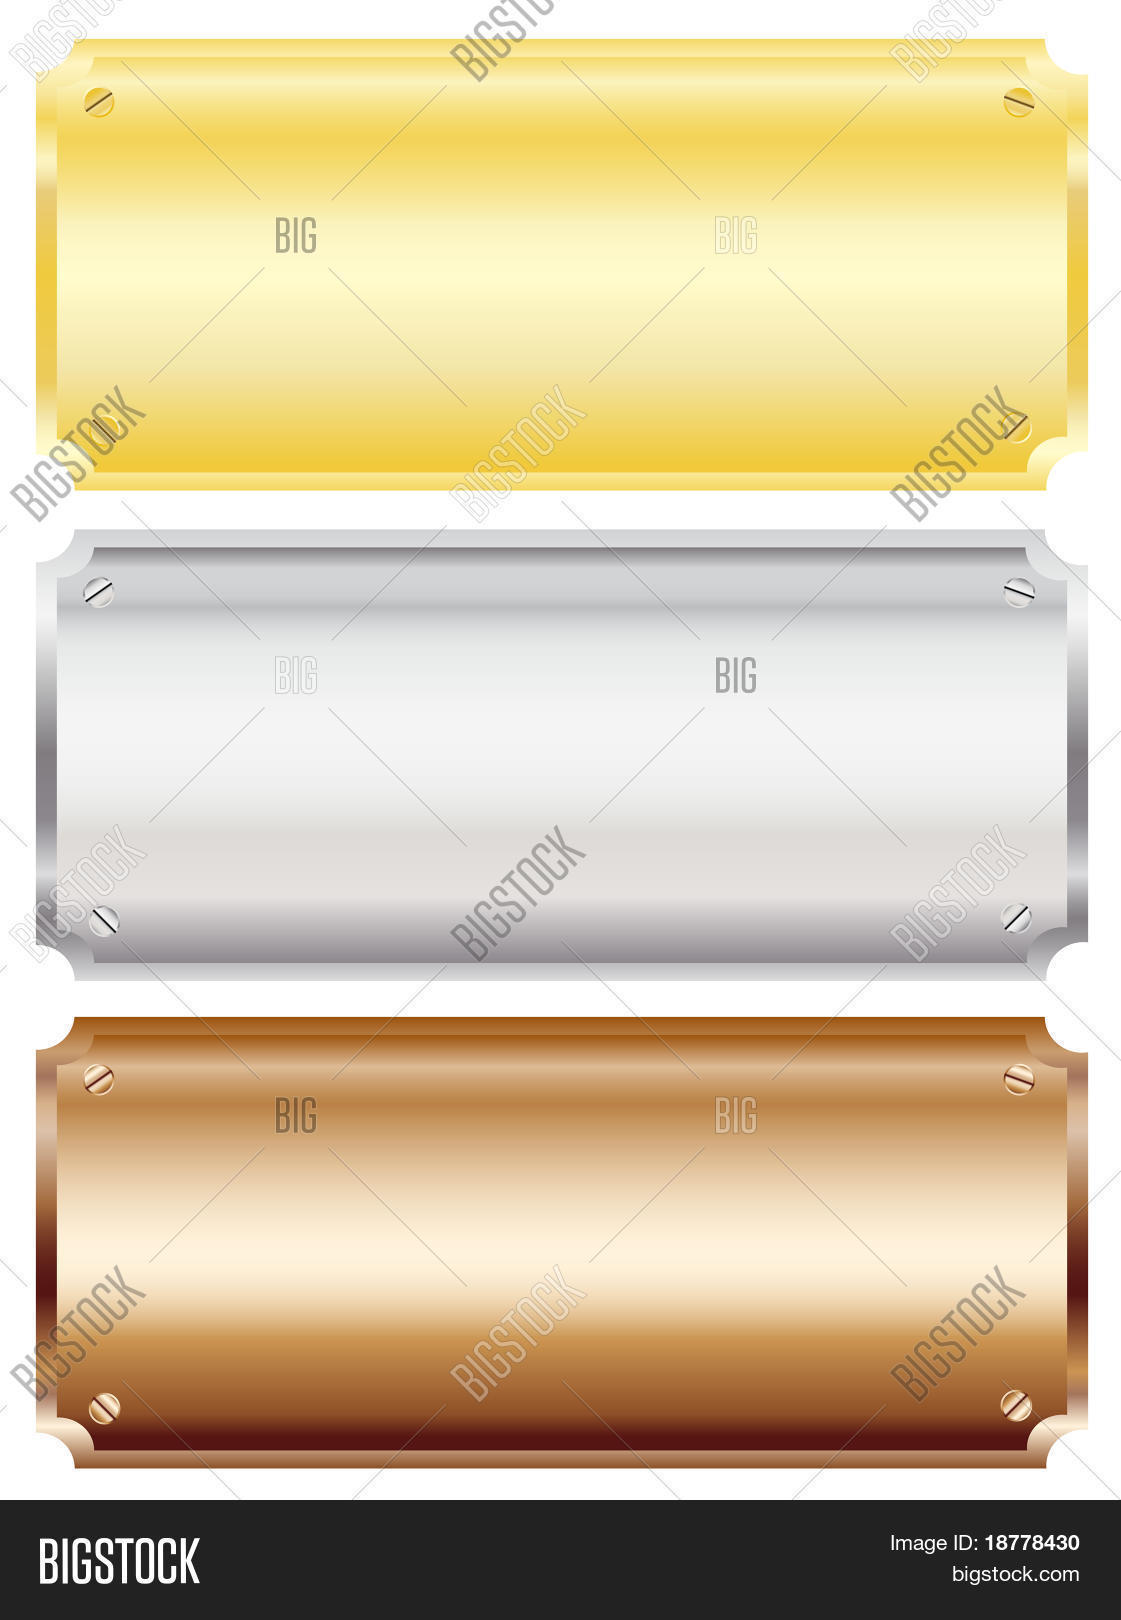 Picture of: Illustration Blank Image Photo Free Trial Bigstock